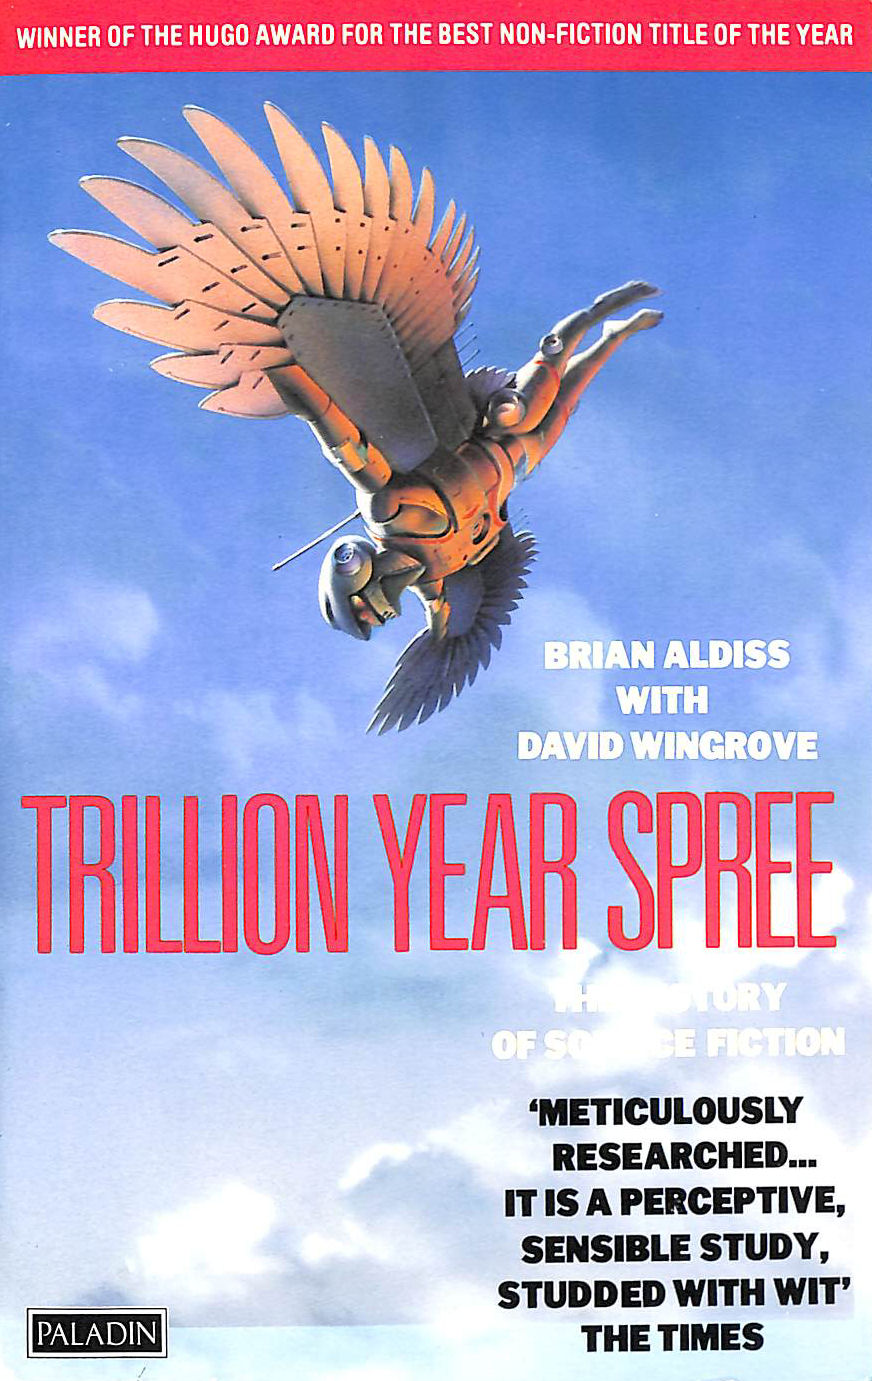 Image for Trillion Year Spree: History Of Science Fiction (Paladin Books)